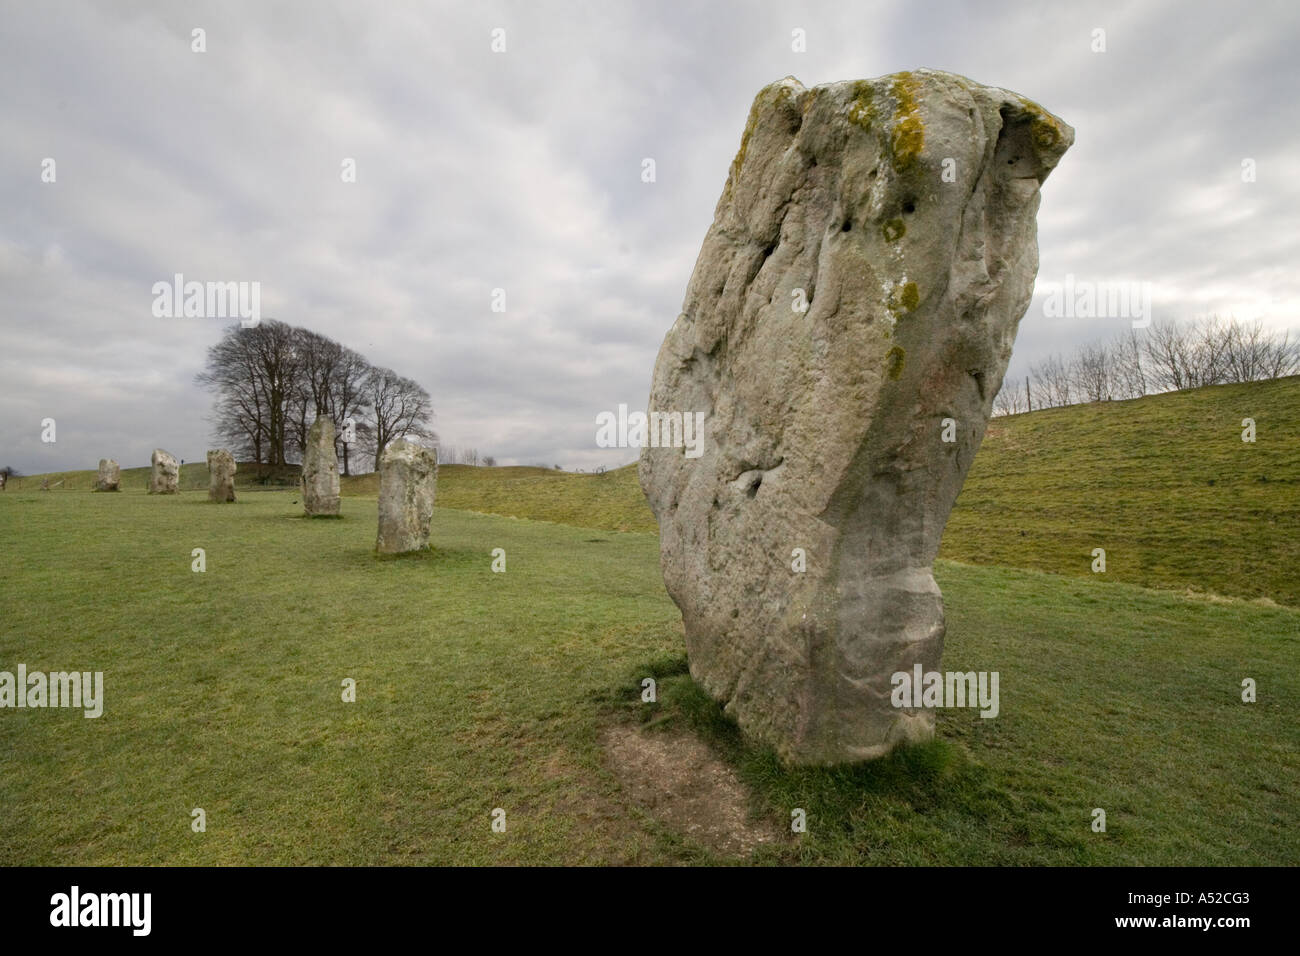 South West Sector Stone, Avebury Monument, Wiltshire England - Stock Image